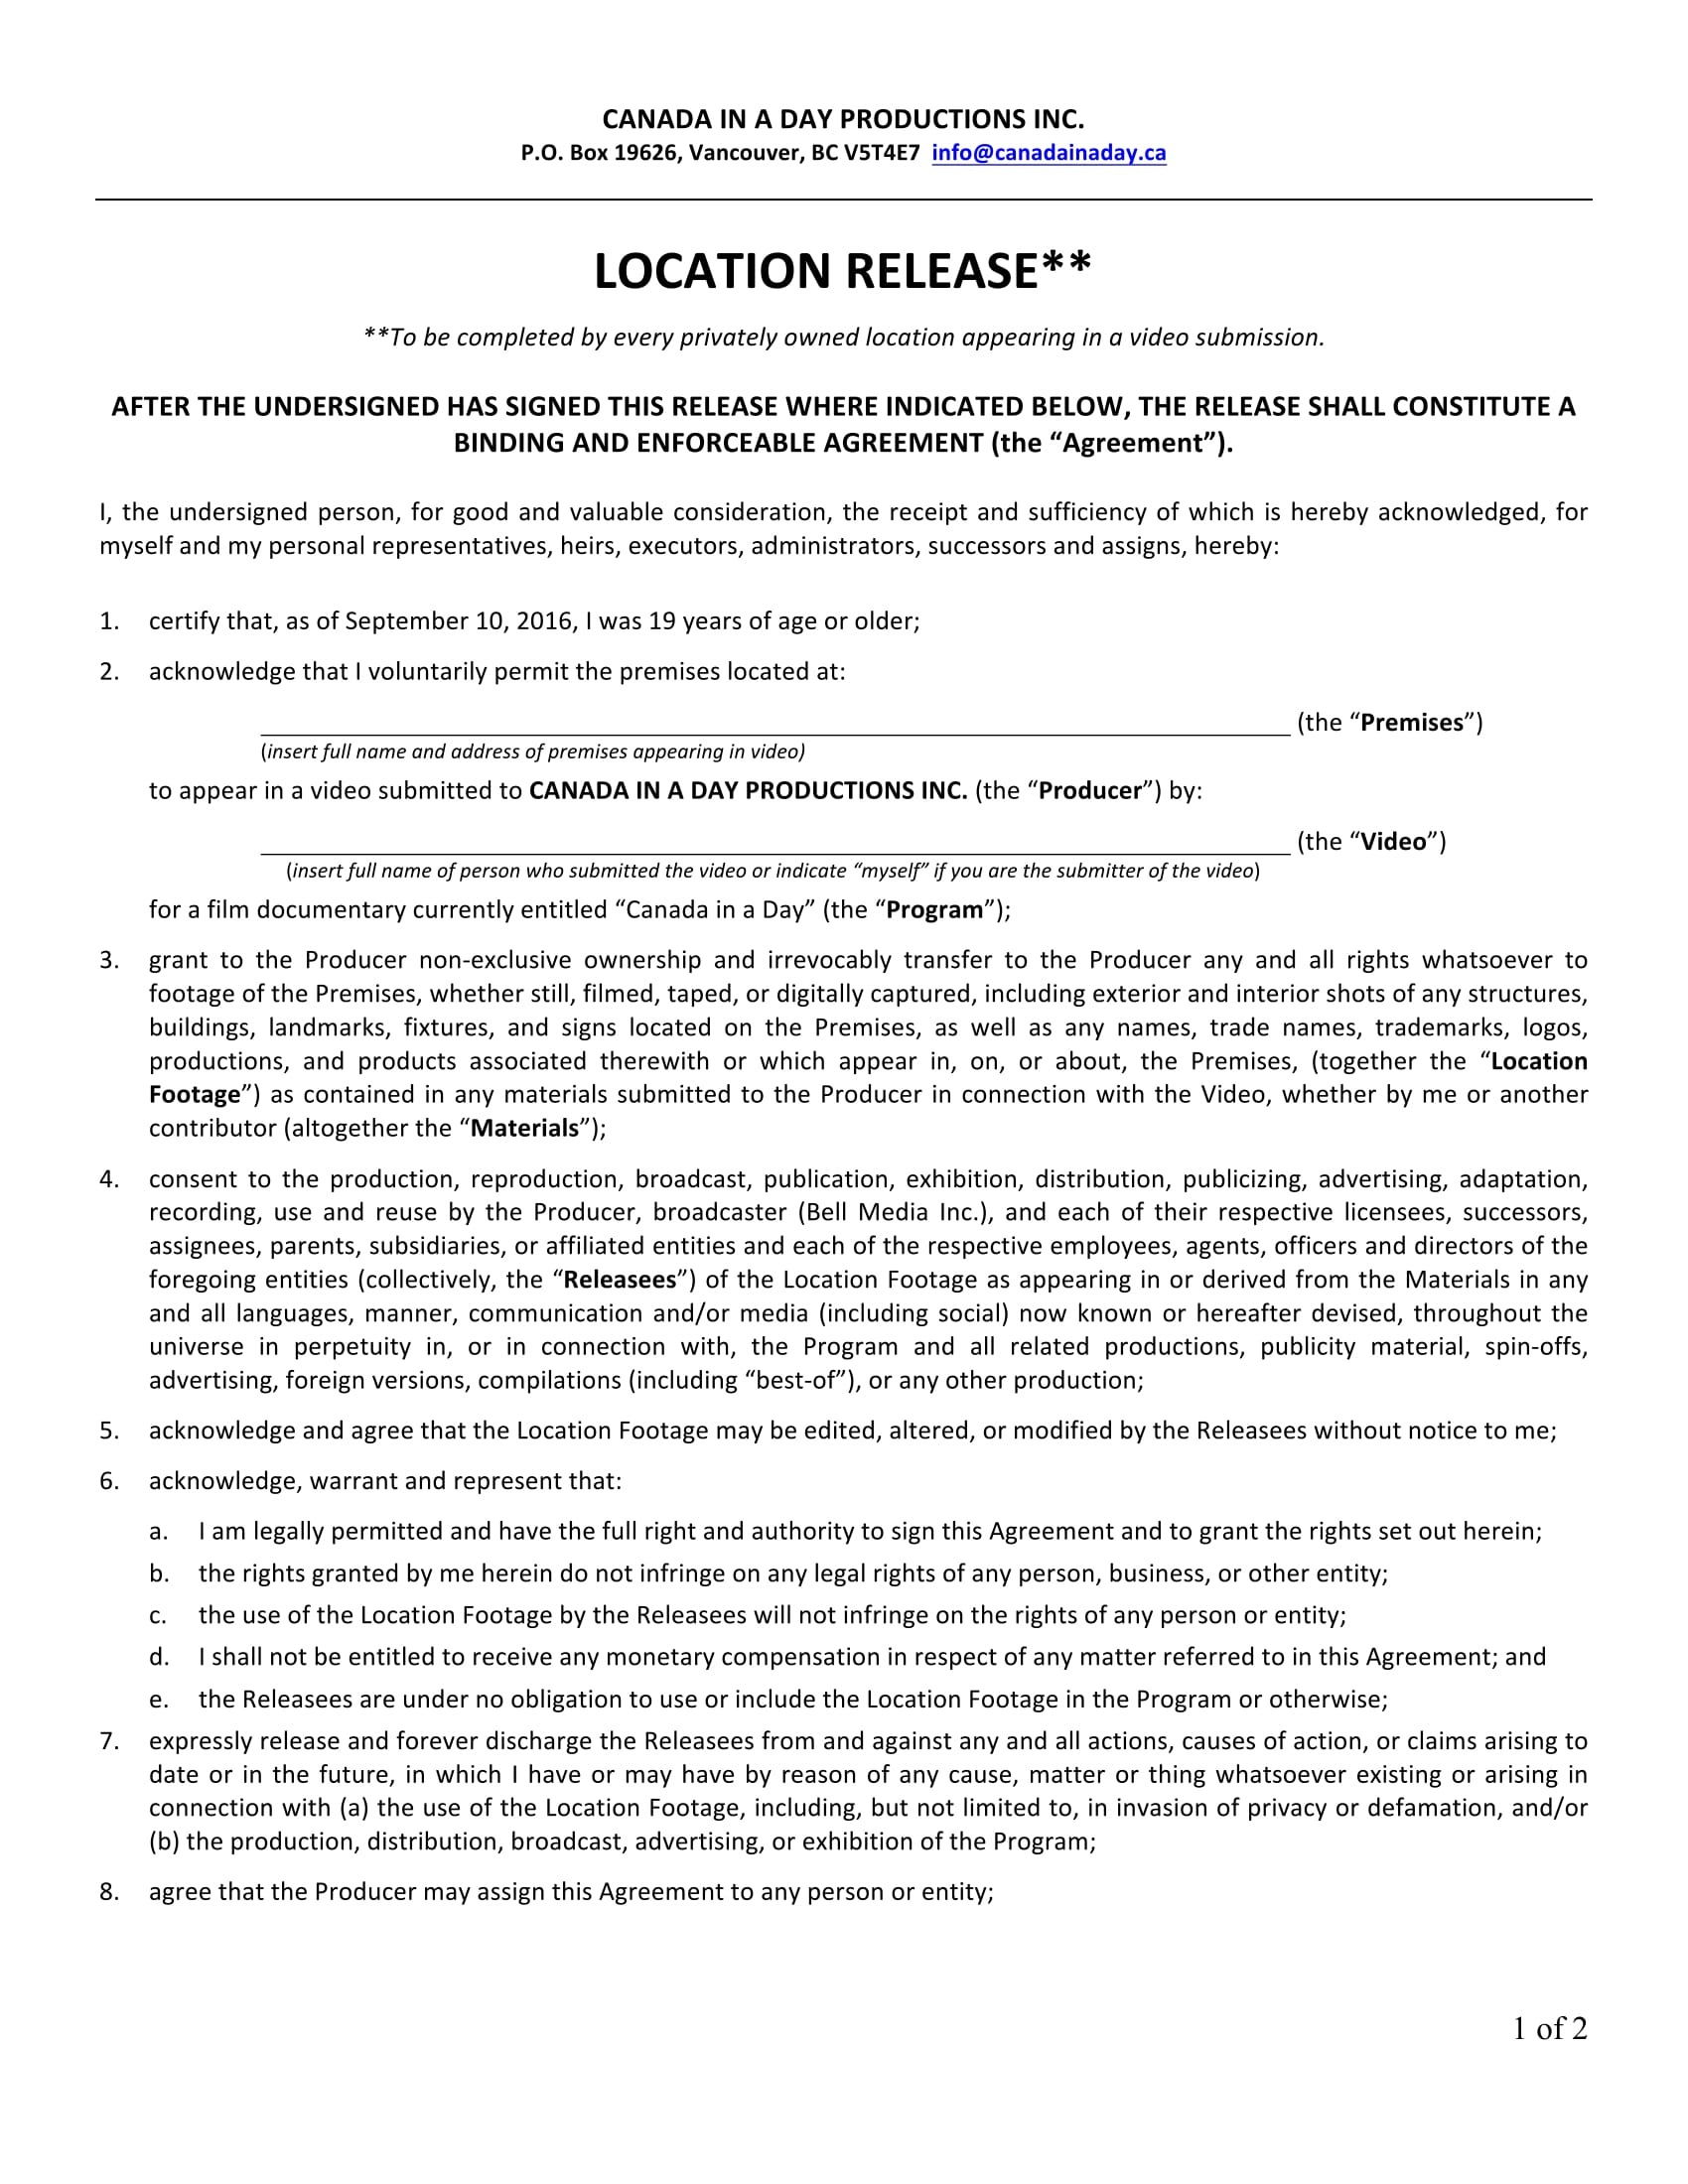 video location release form 1